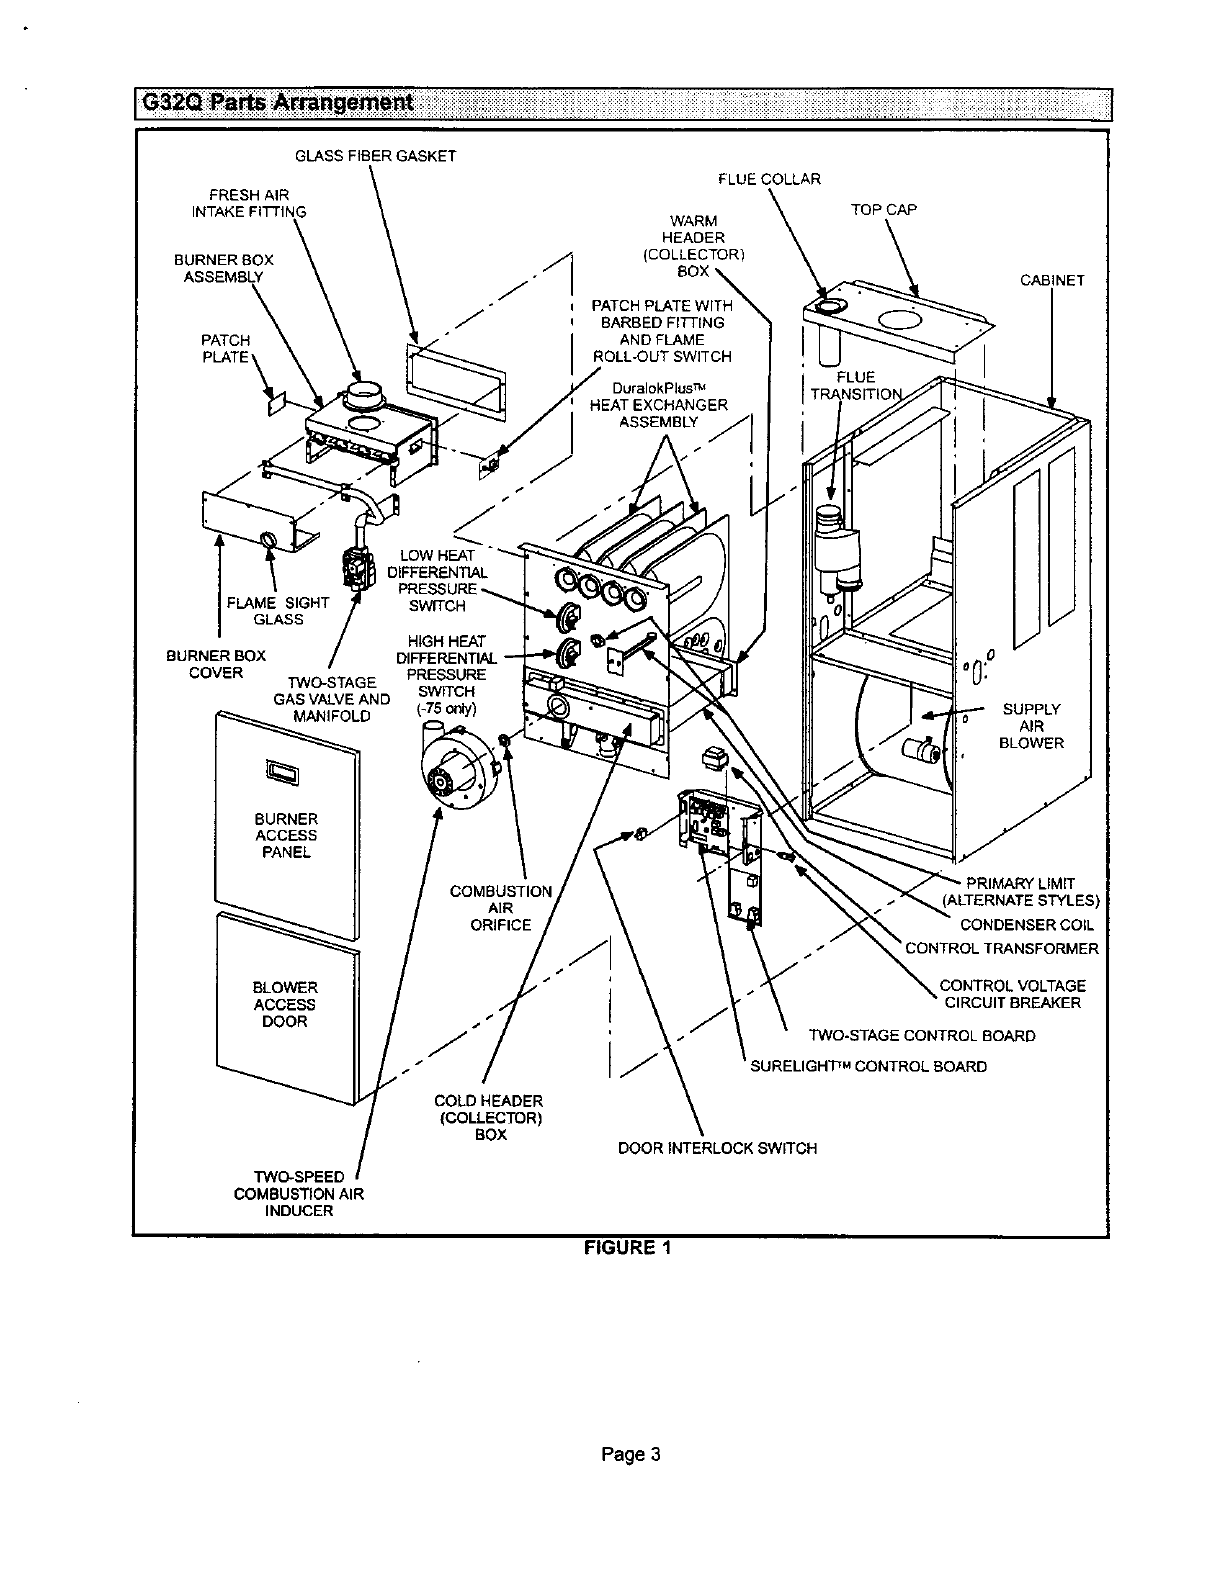 Page 3 of Lennox International Inc. Furnace G32Q3-75 User